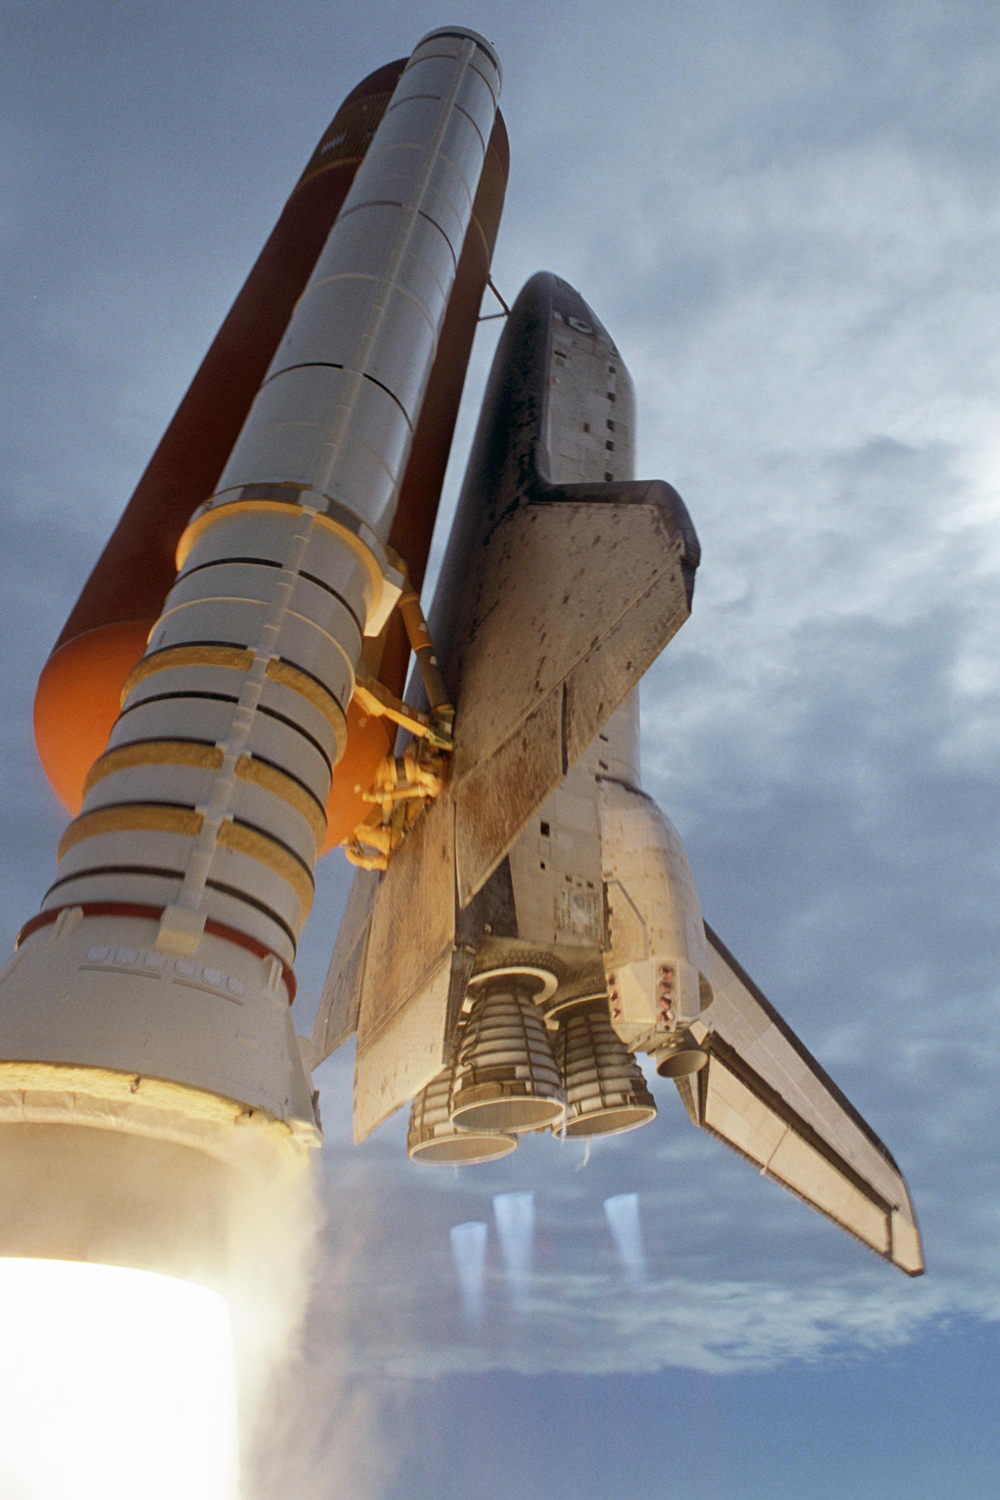 NASA's Space Shuttle Program In Pictures: A Tribute